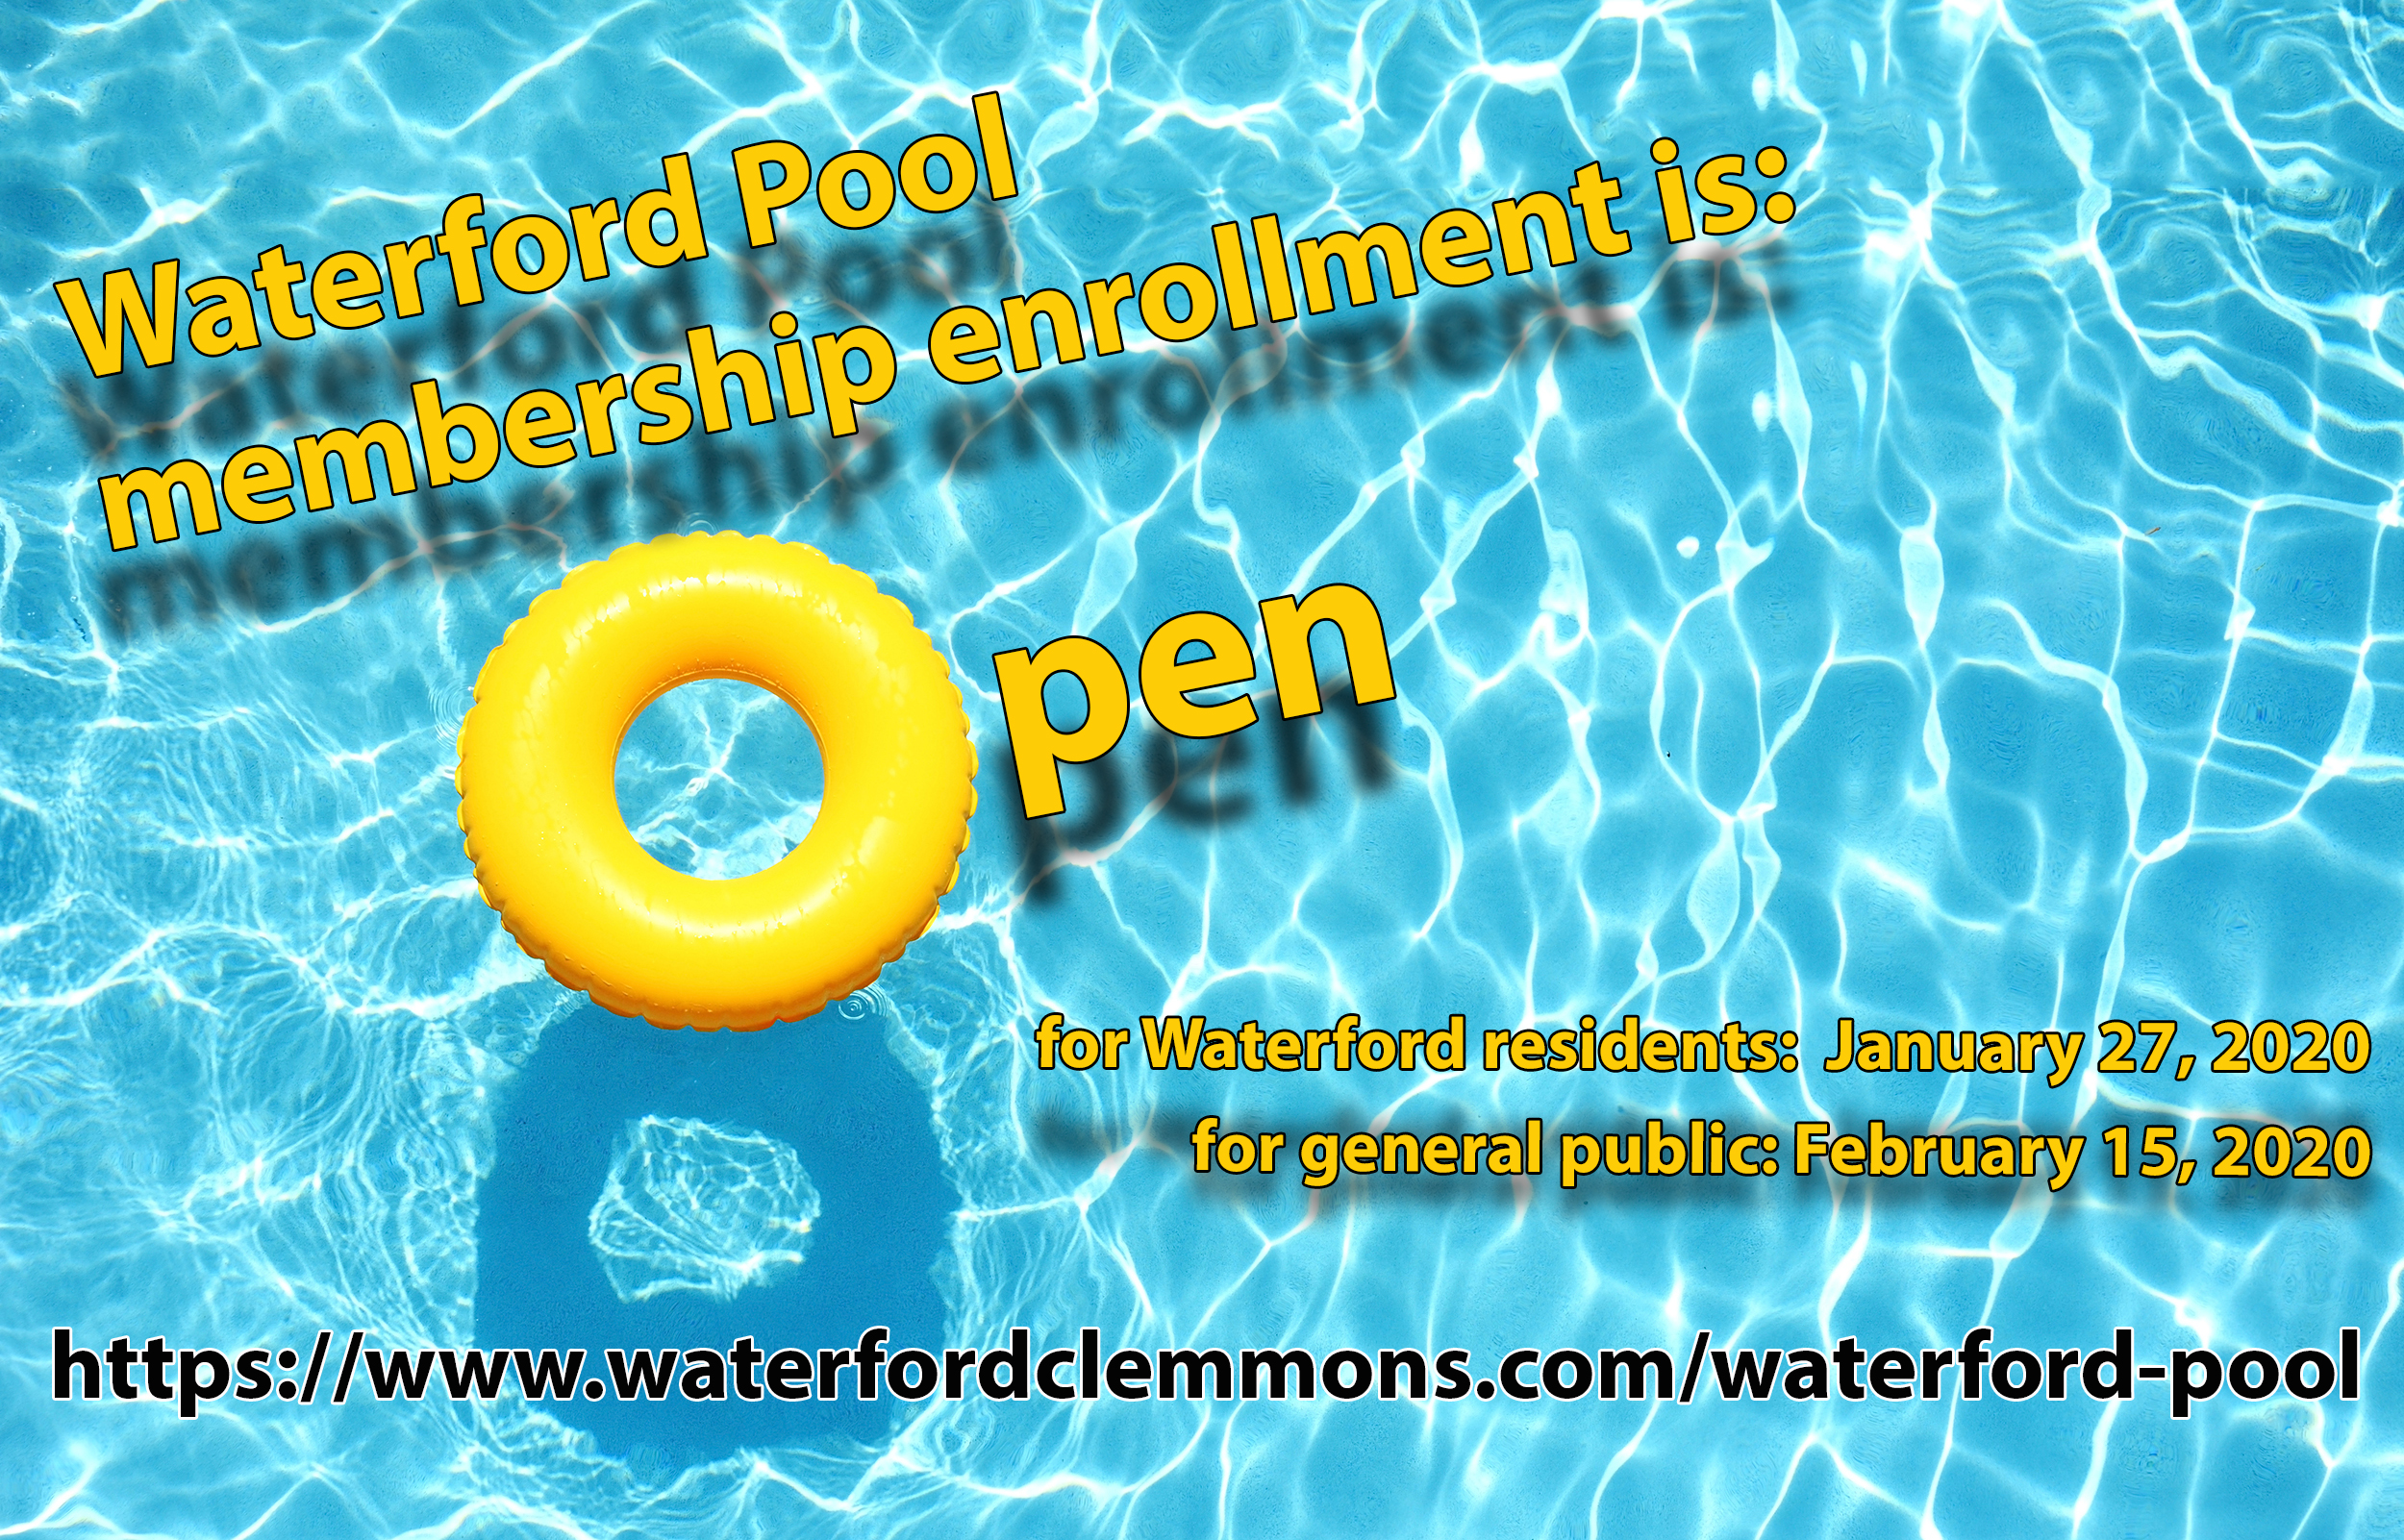 Waterford 2020 Pool Membership Information